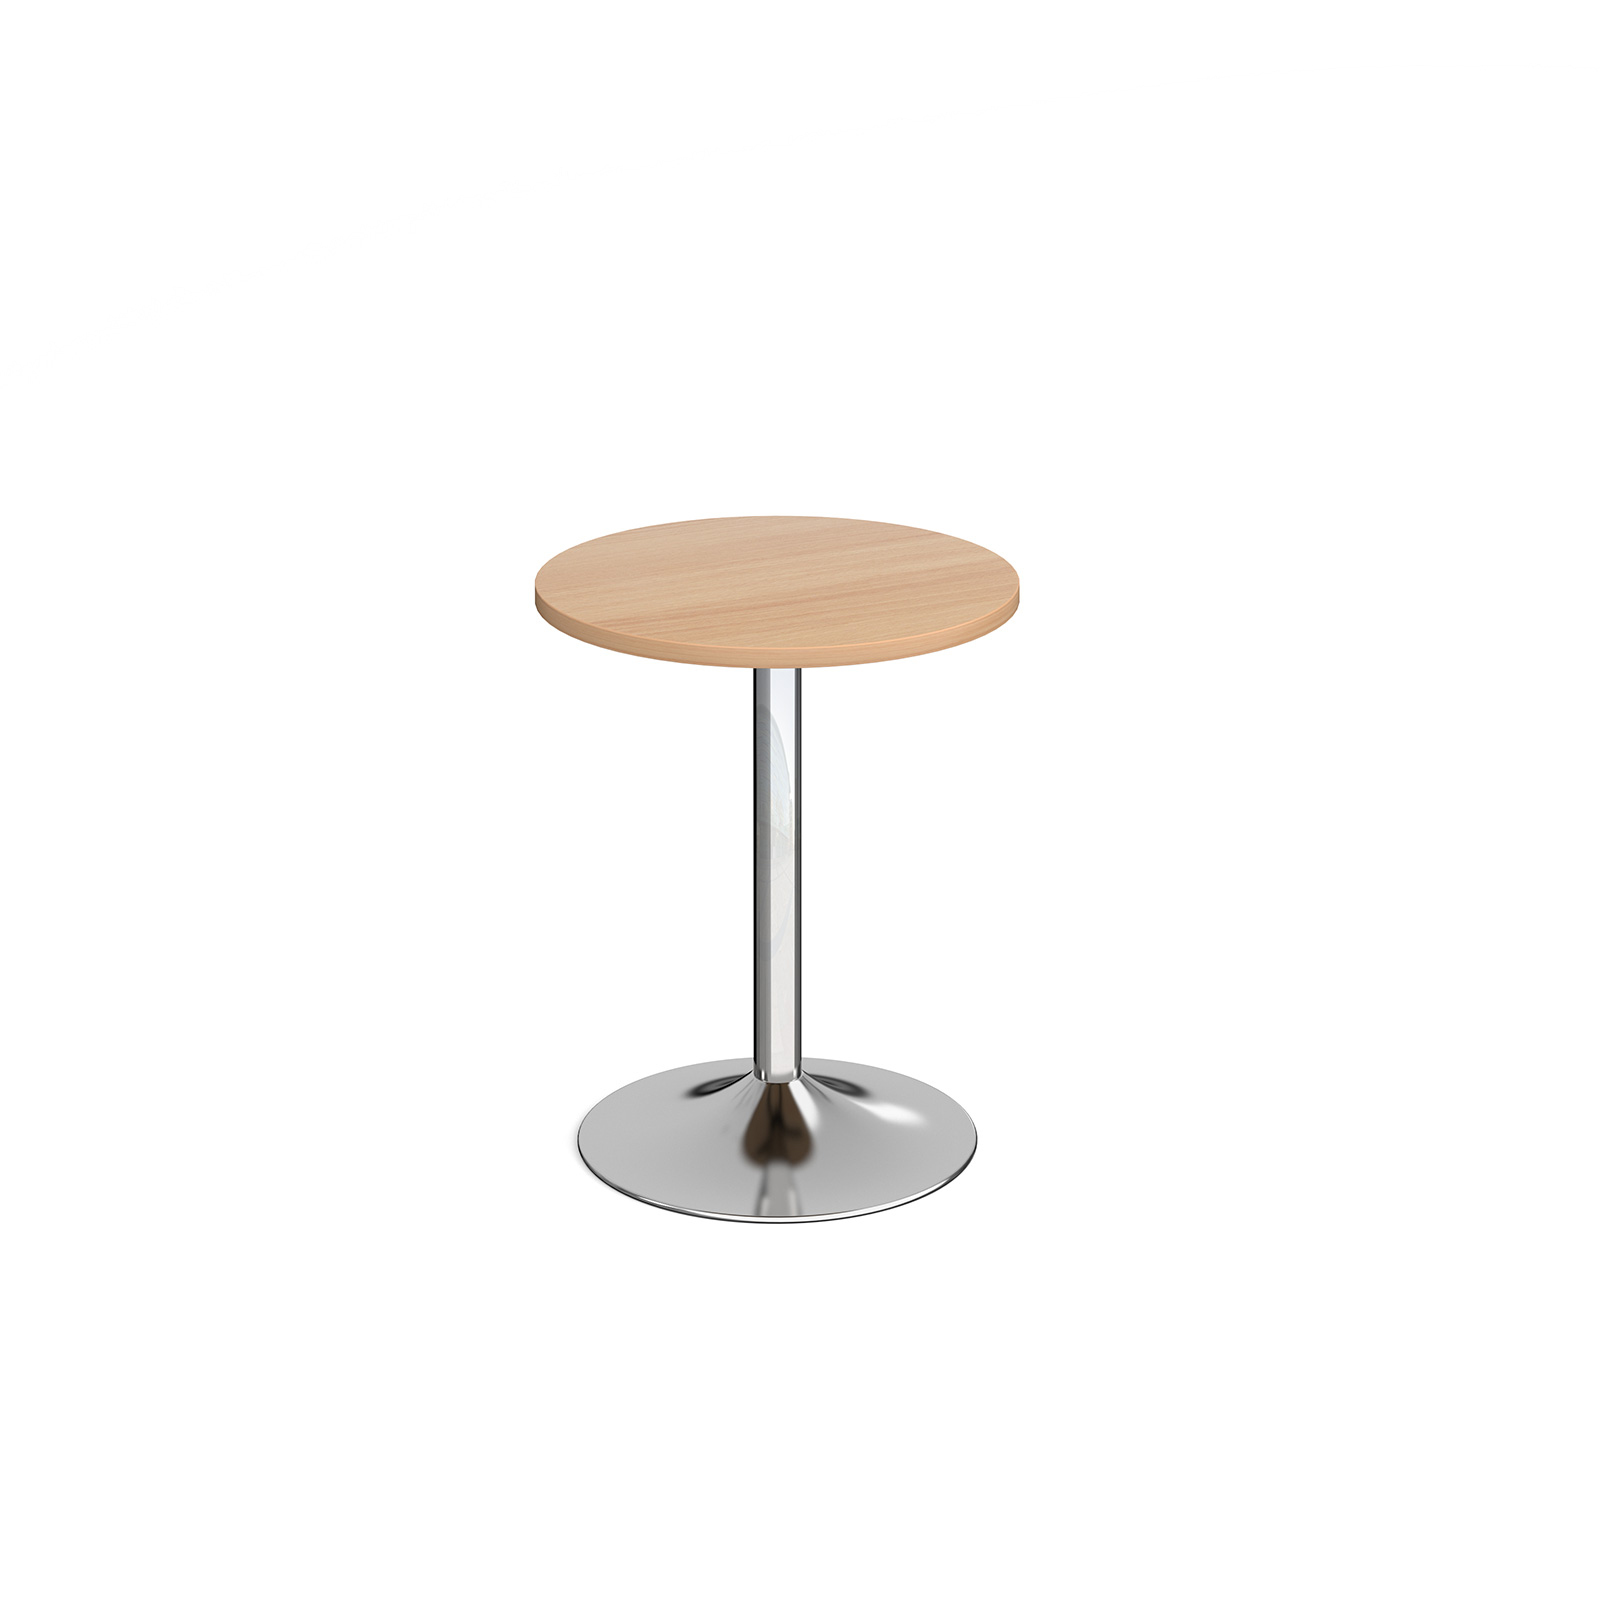 Canteen / Dining Genoa circular dining table with trumpet base